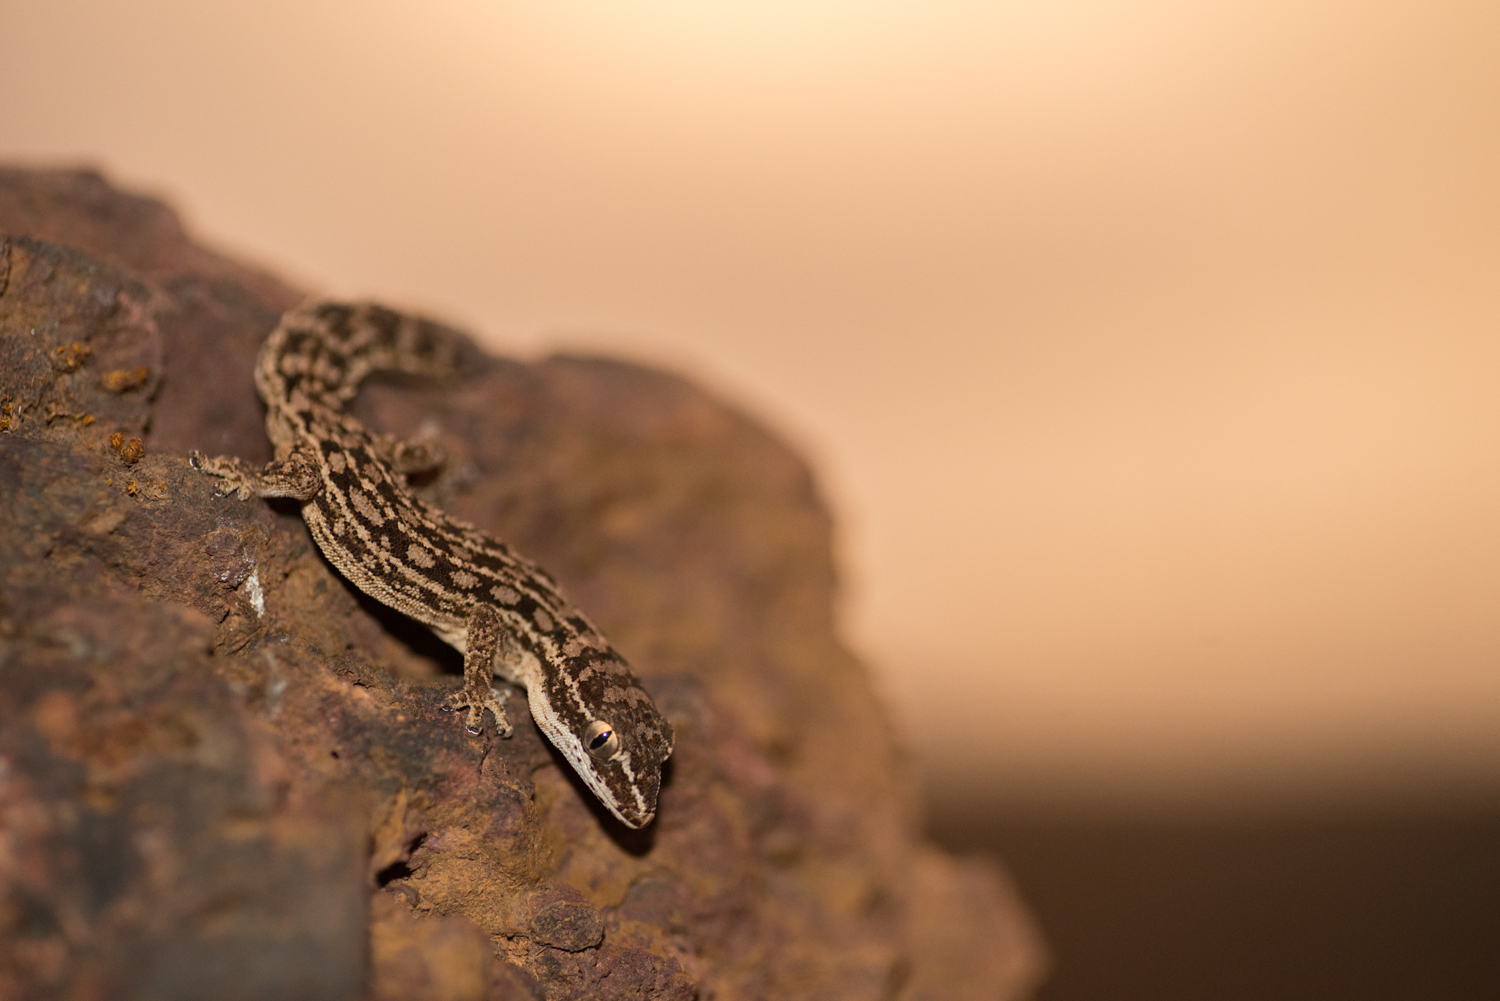 No man is an island, but each plateau is one.  Hemidactylus satarensis  is a classic example of plateaus catalyzing speciation. This rare species is endemic to Chalkewadi plateau.